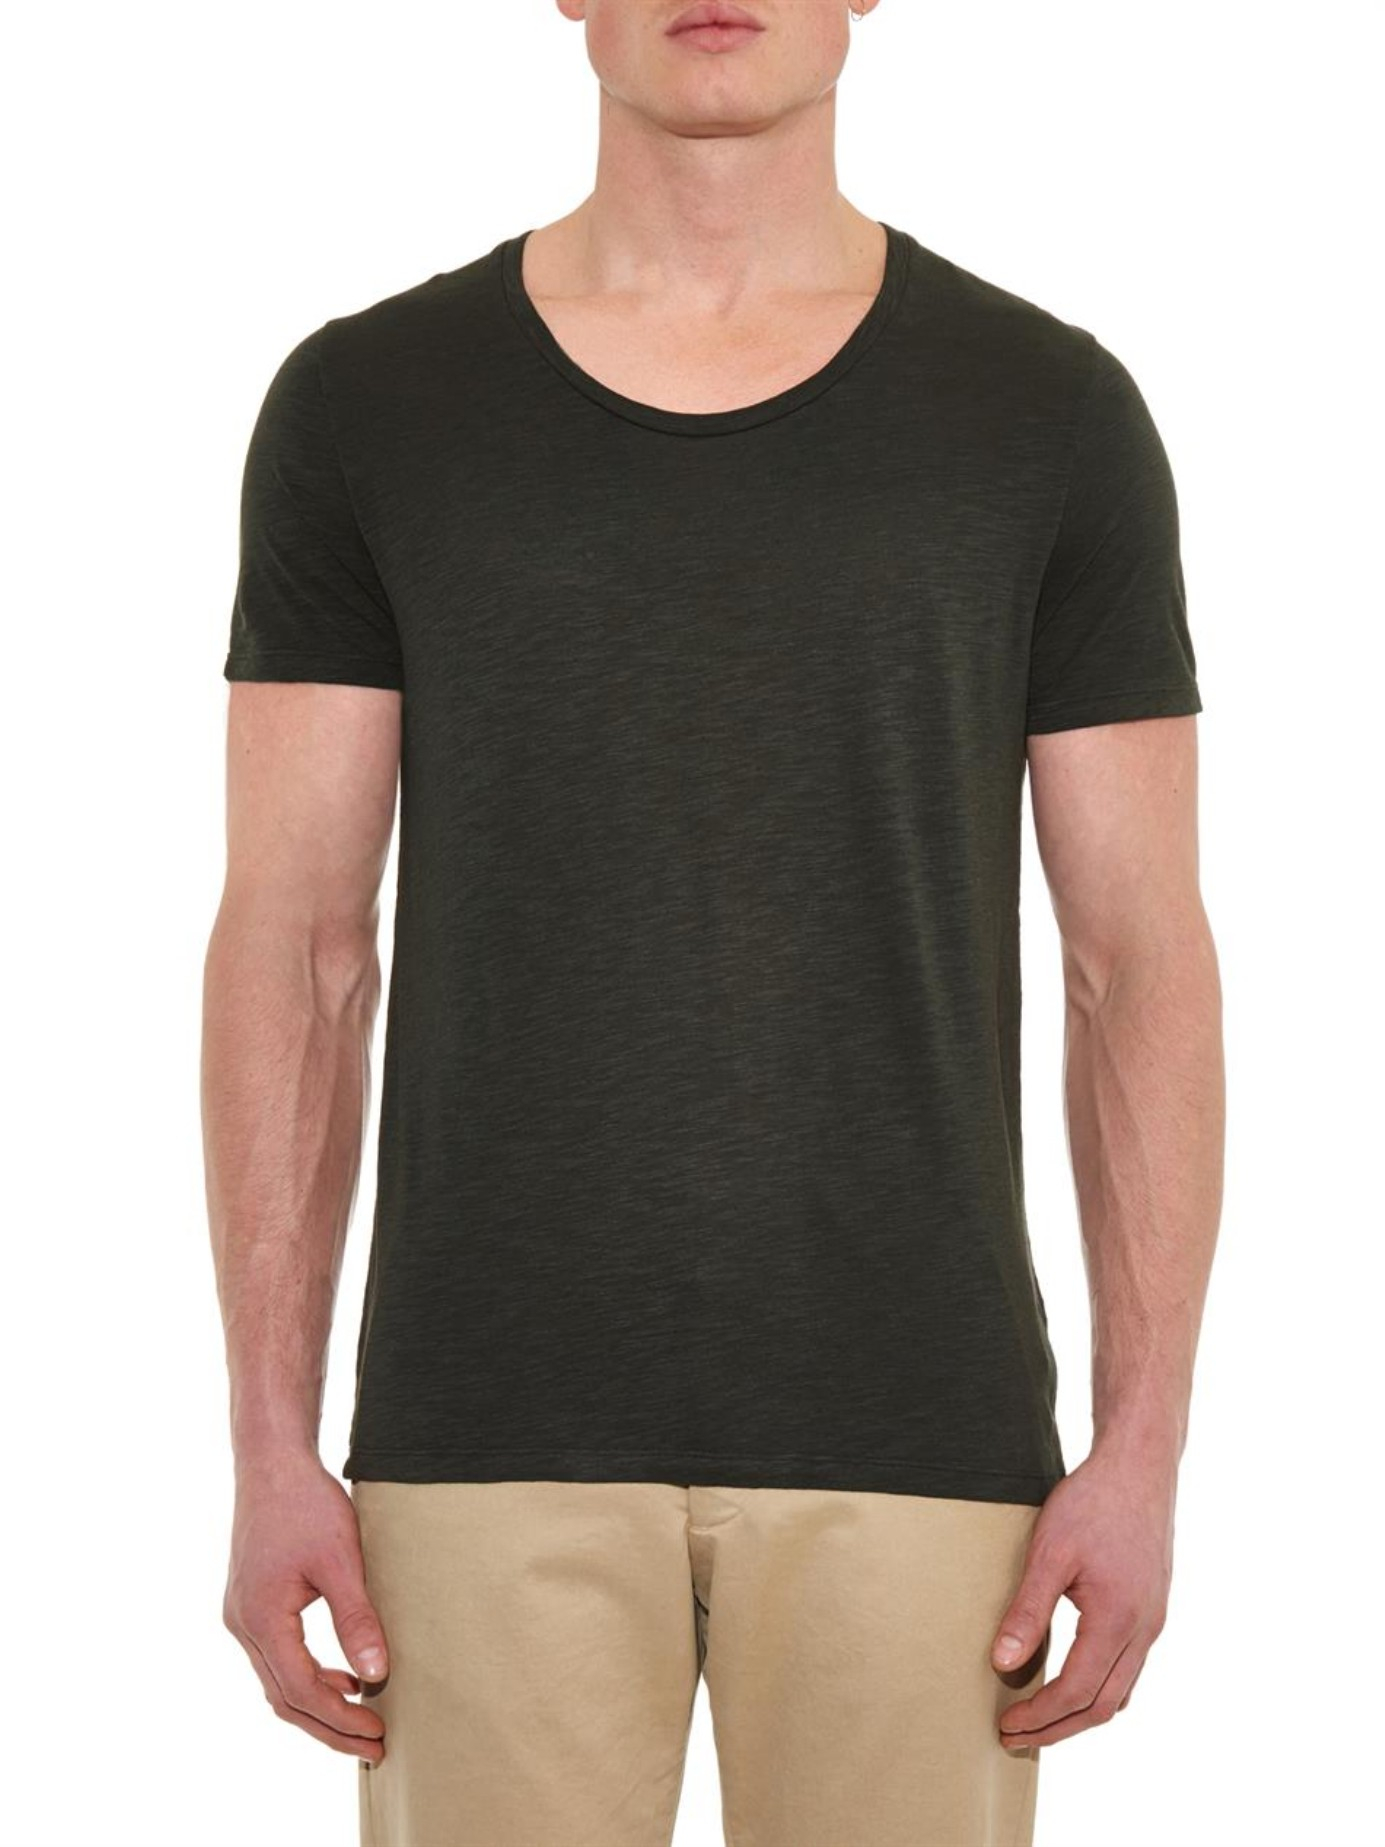 lyst american vintage jacksonville t shirt in gray for men. Black Bedroom Furniture Sets. Home Design Ideas